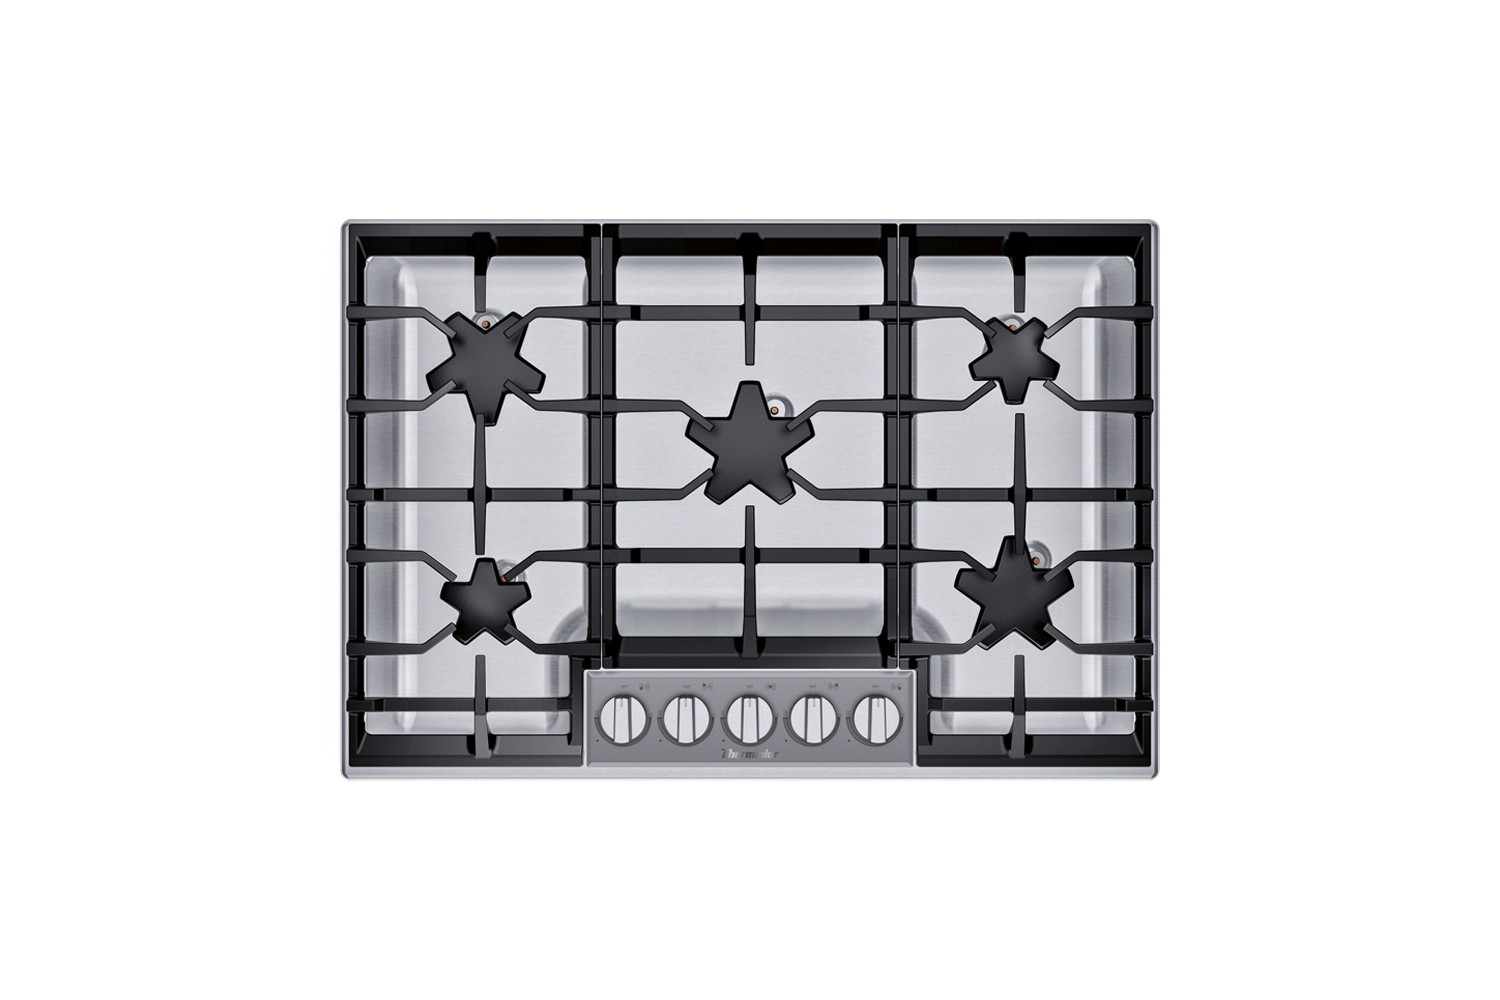 the thermador masterpiece series 36 inch built in gas cooktop (sgsp365ts) is \$ 9